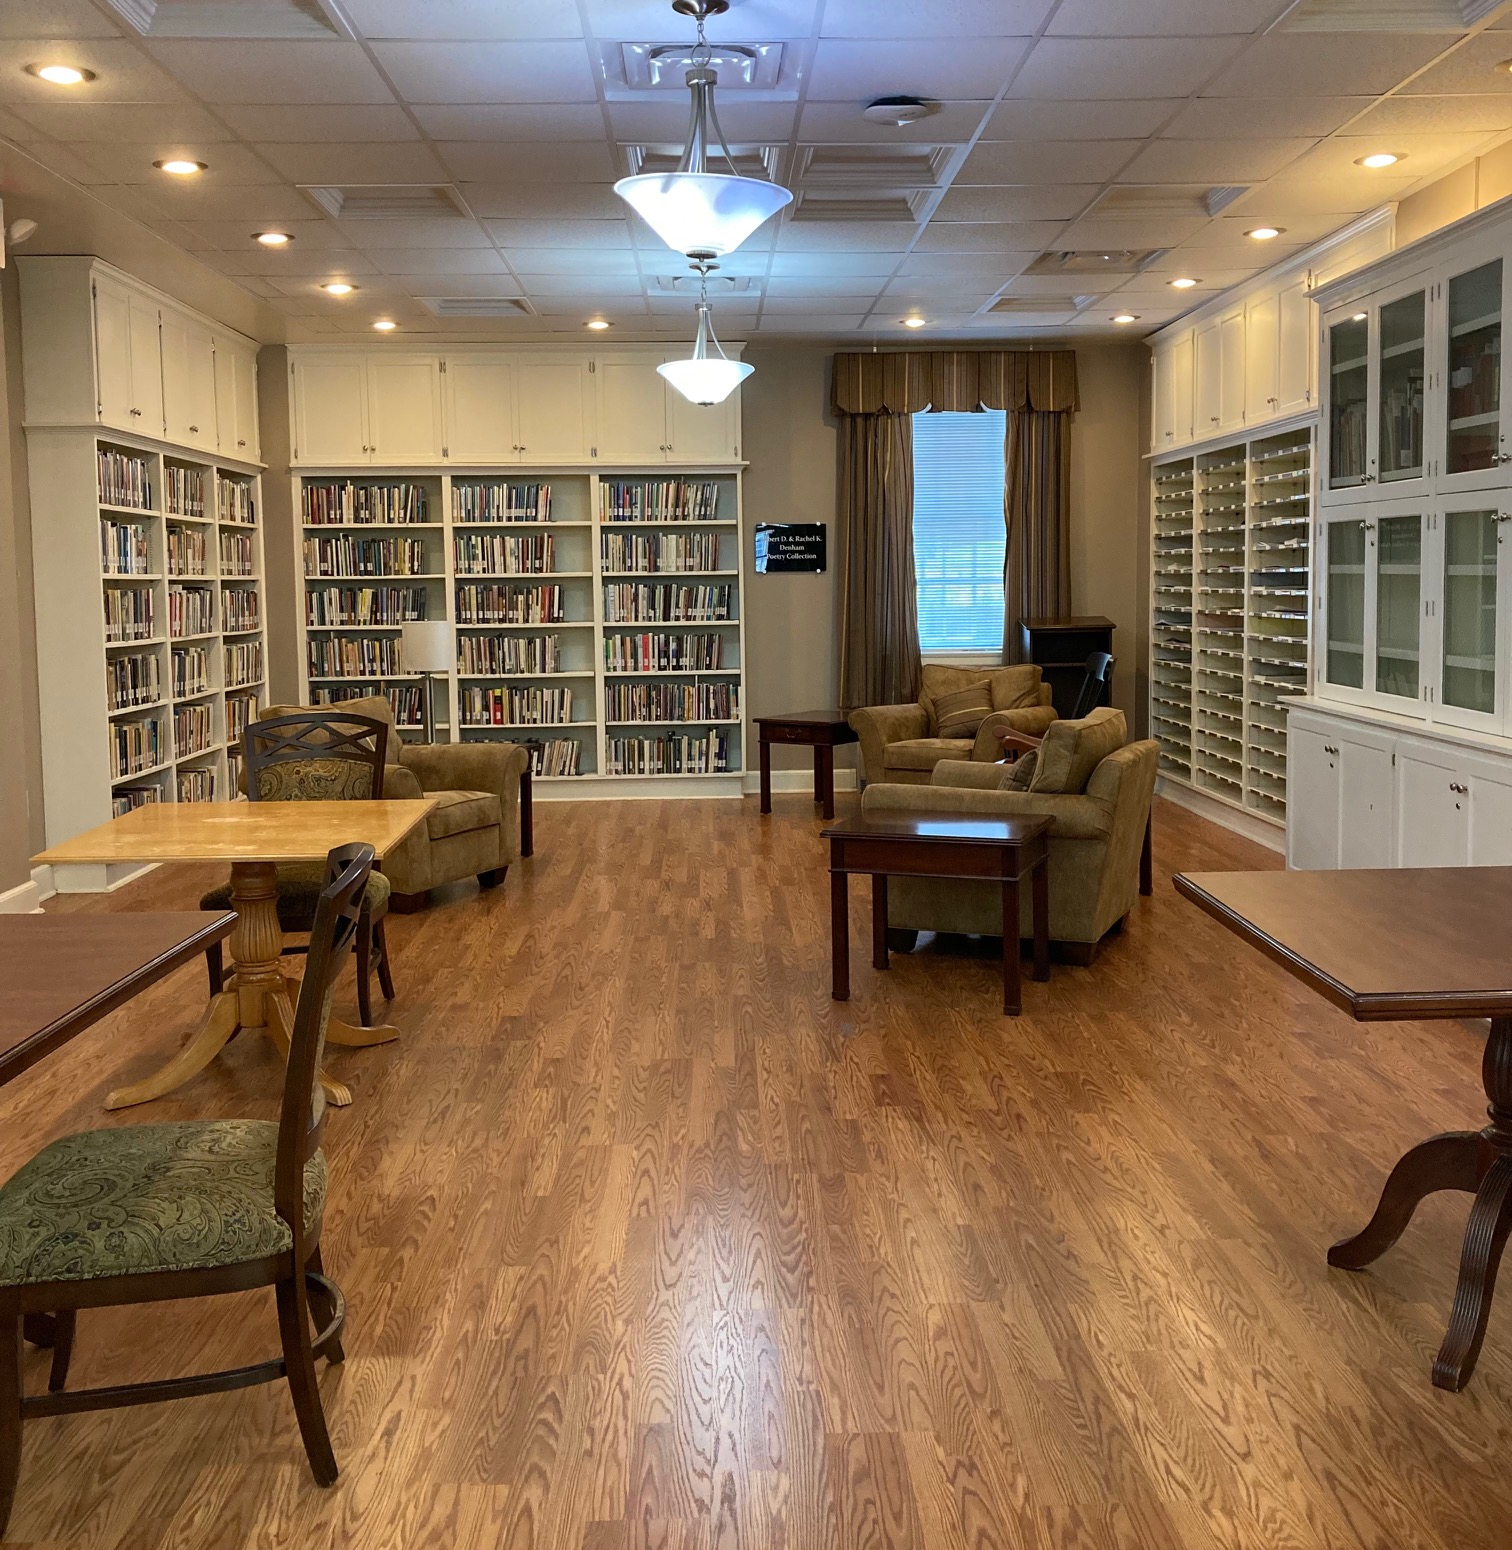 The Denham Poetry Room and Collection